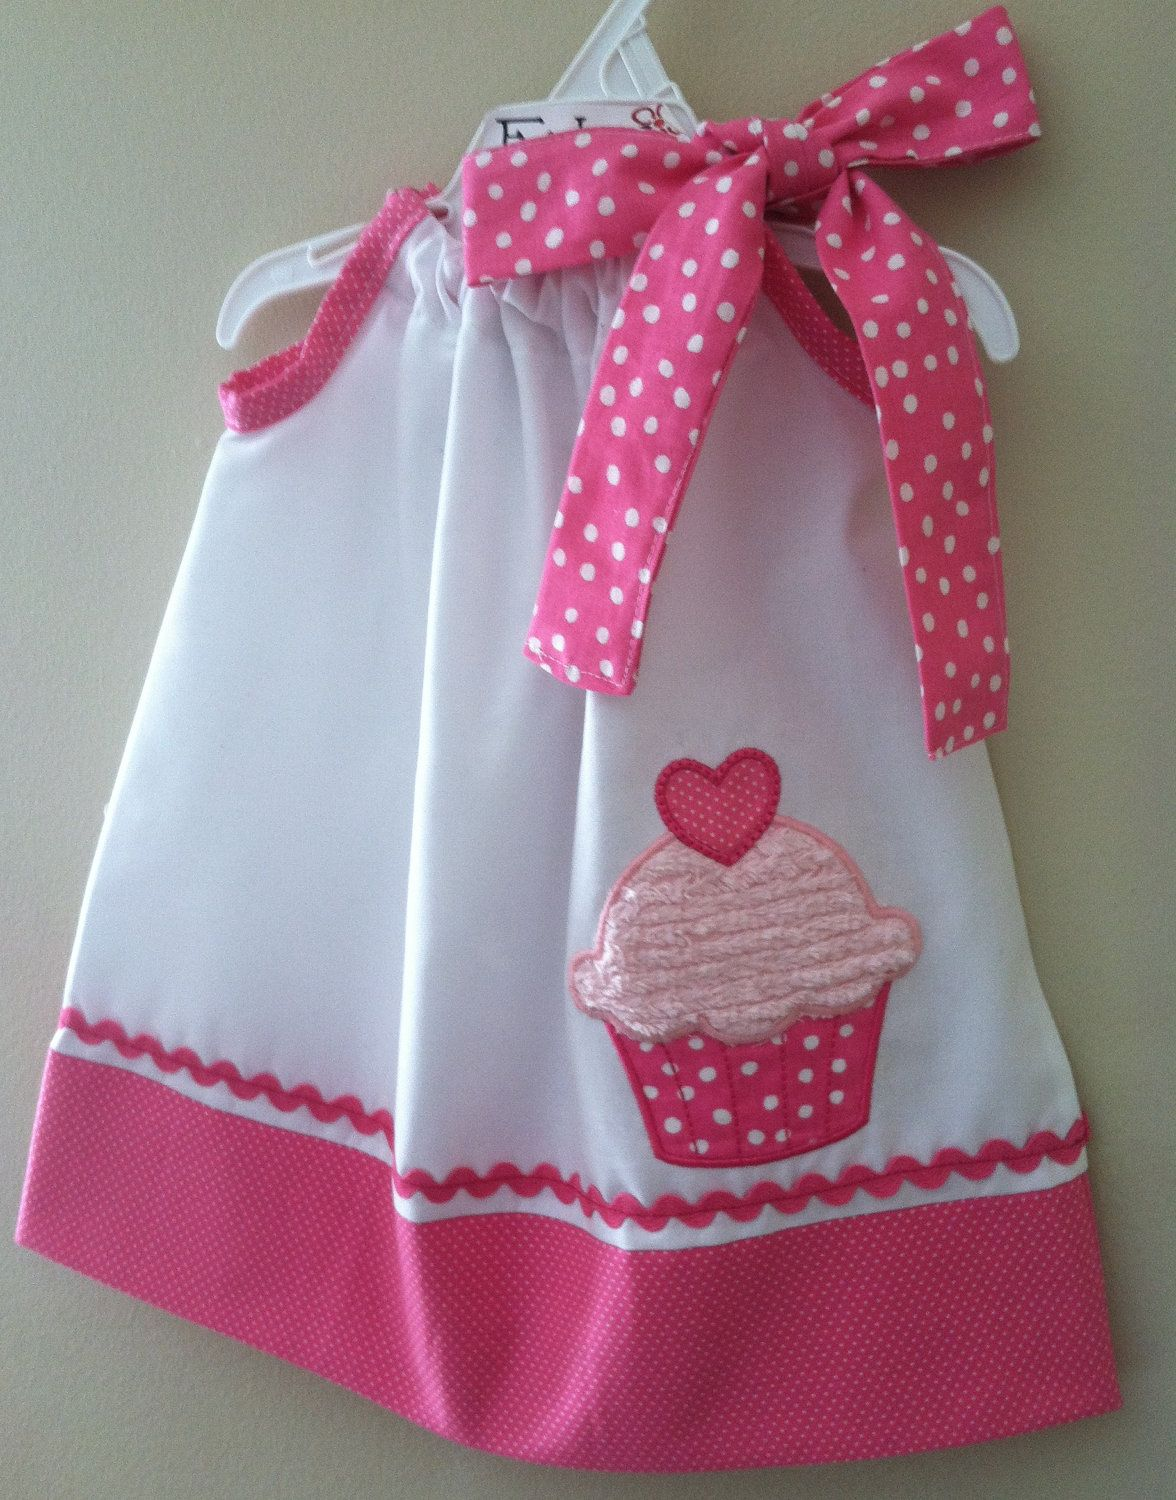 adorable new cupcake pillowcase style dress kinderkleider pinterest kinder kleider dinge. Black Bedroom Furniture Sets. Home Design Ideas